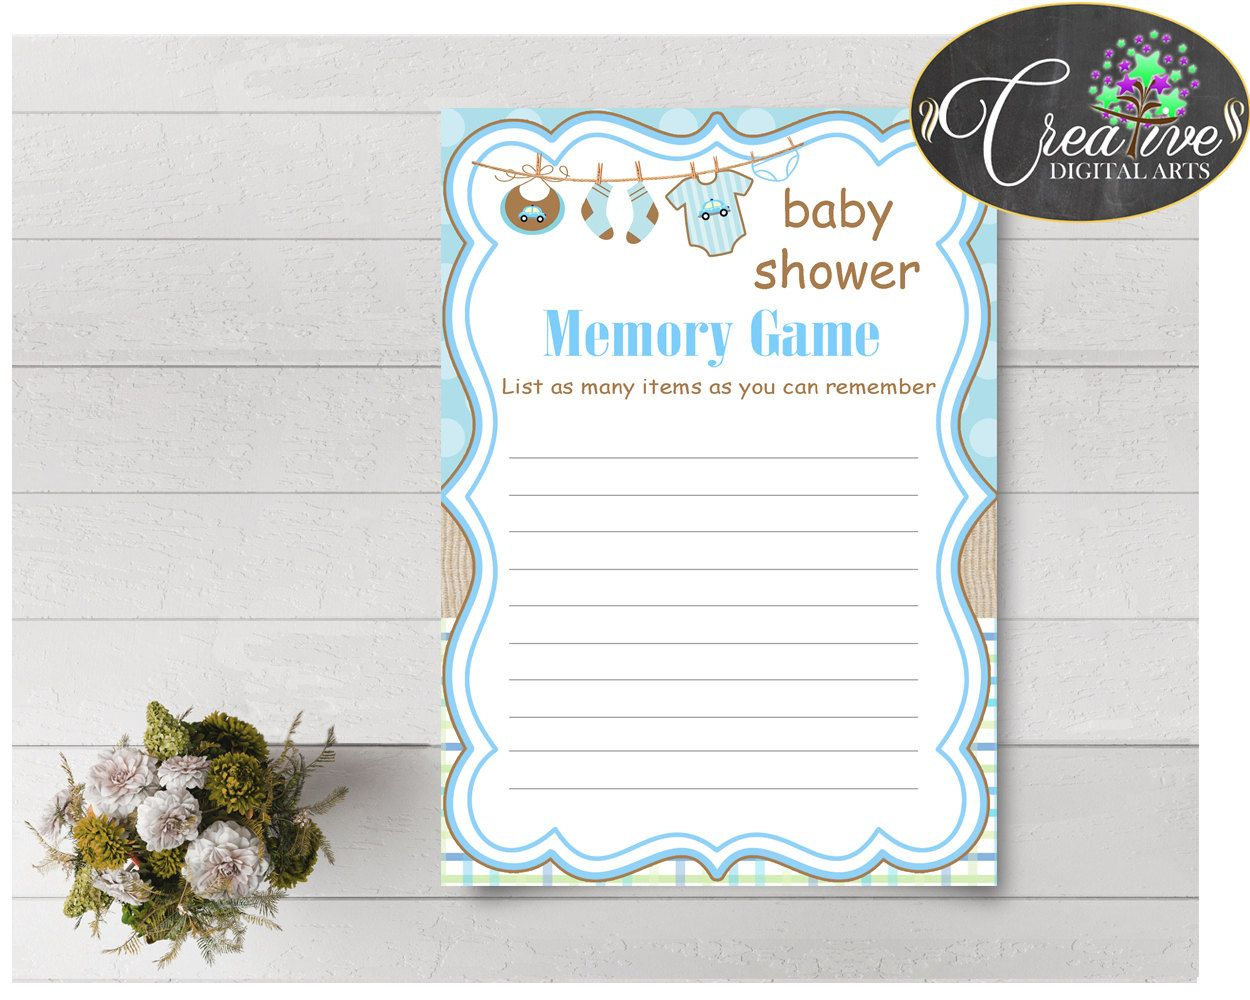 Baby Shower Laundry Baby Shower Clothing Entertain Guests Play MEMORY GAME,  Party Décor, Customizable Files   Bc001